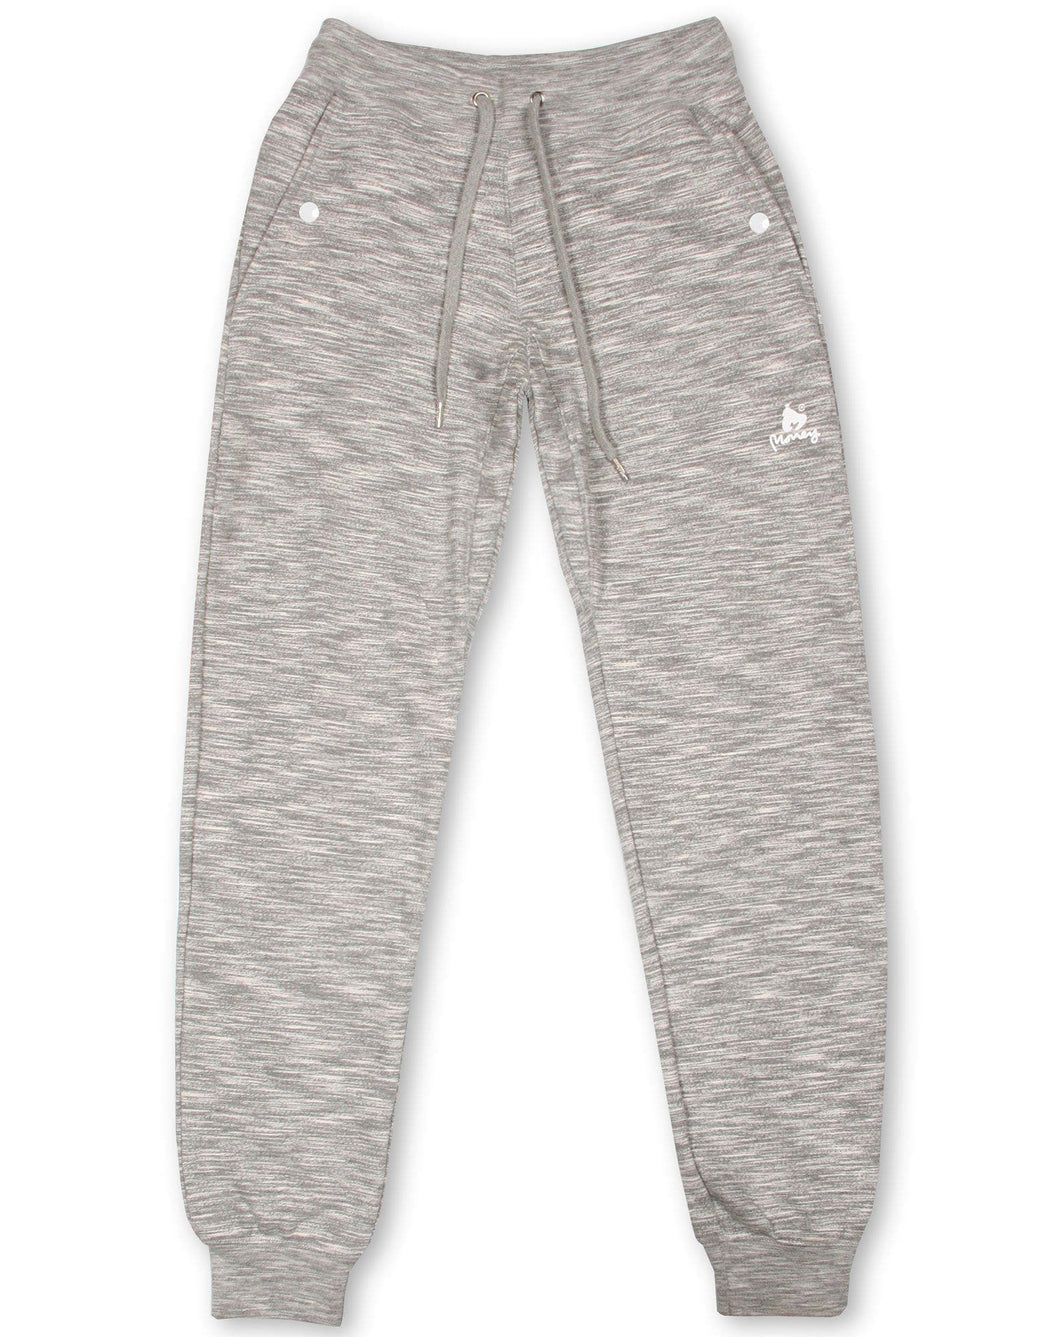 Money Sig Ape Heather Pant